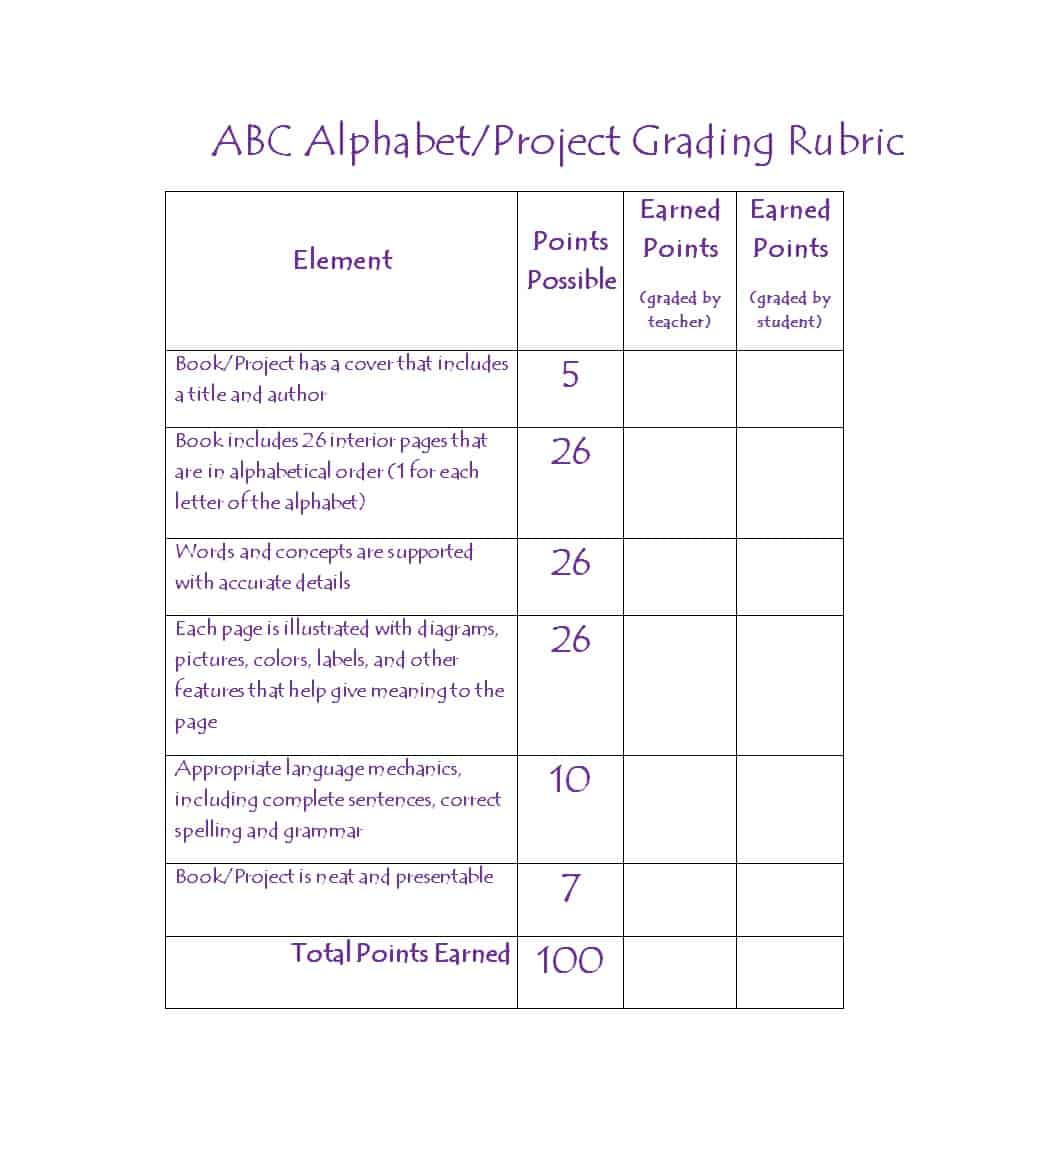 46 Editable Rubric Templates (Word Format) ᐅ Template Lab Regarding Grading Rubric Template Word